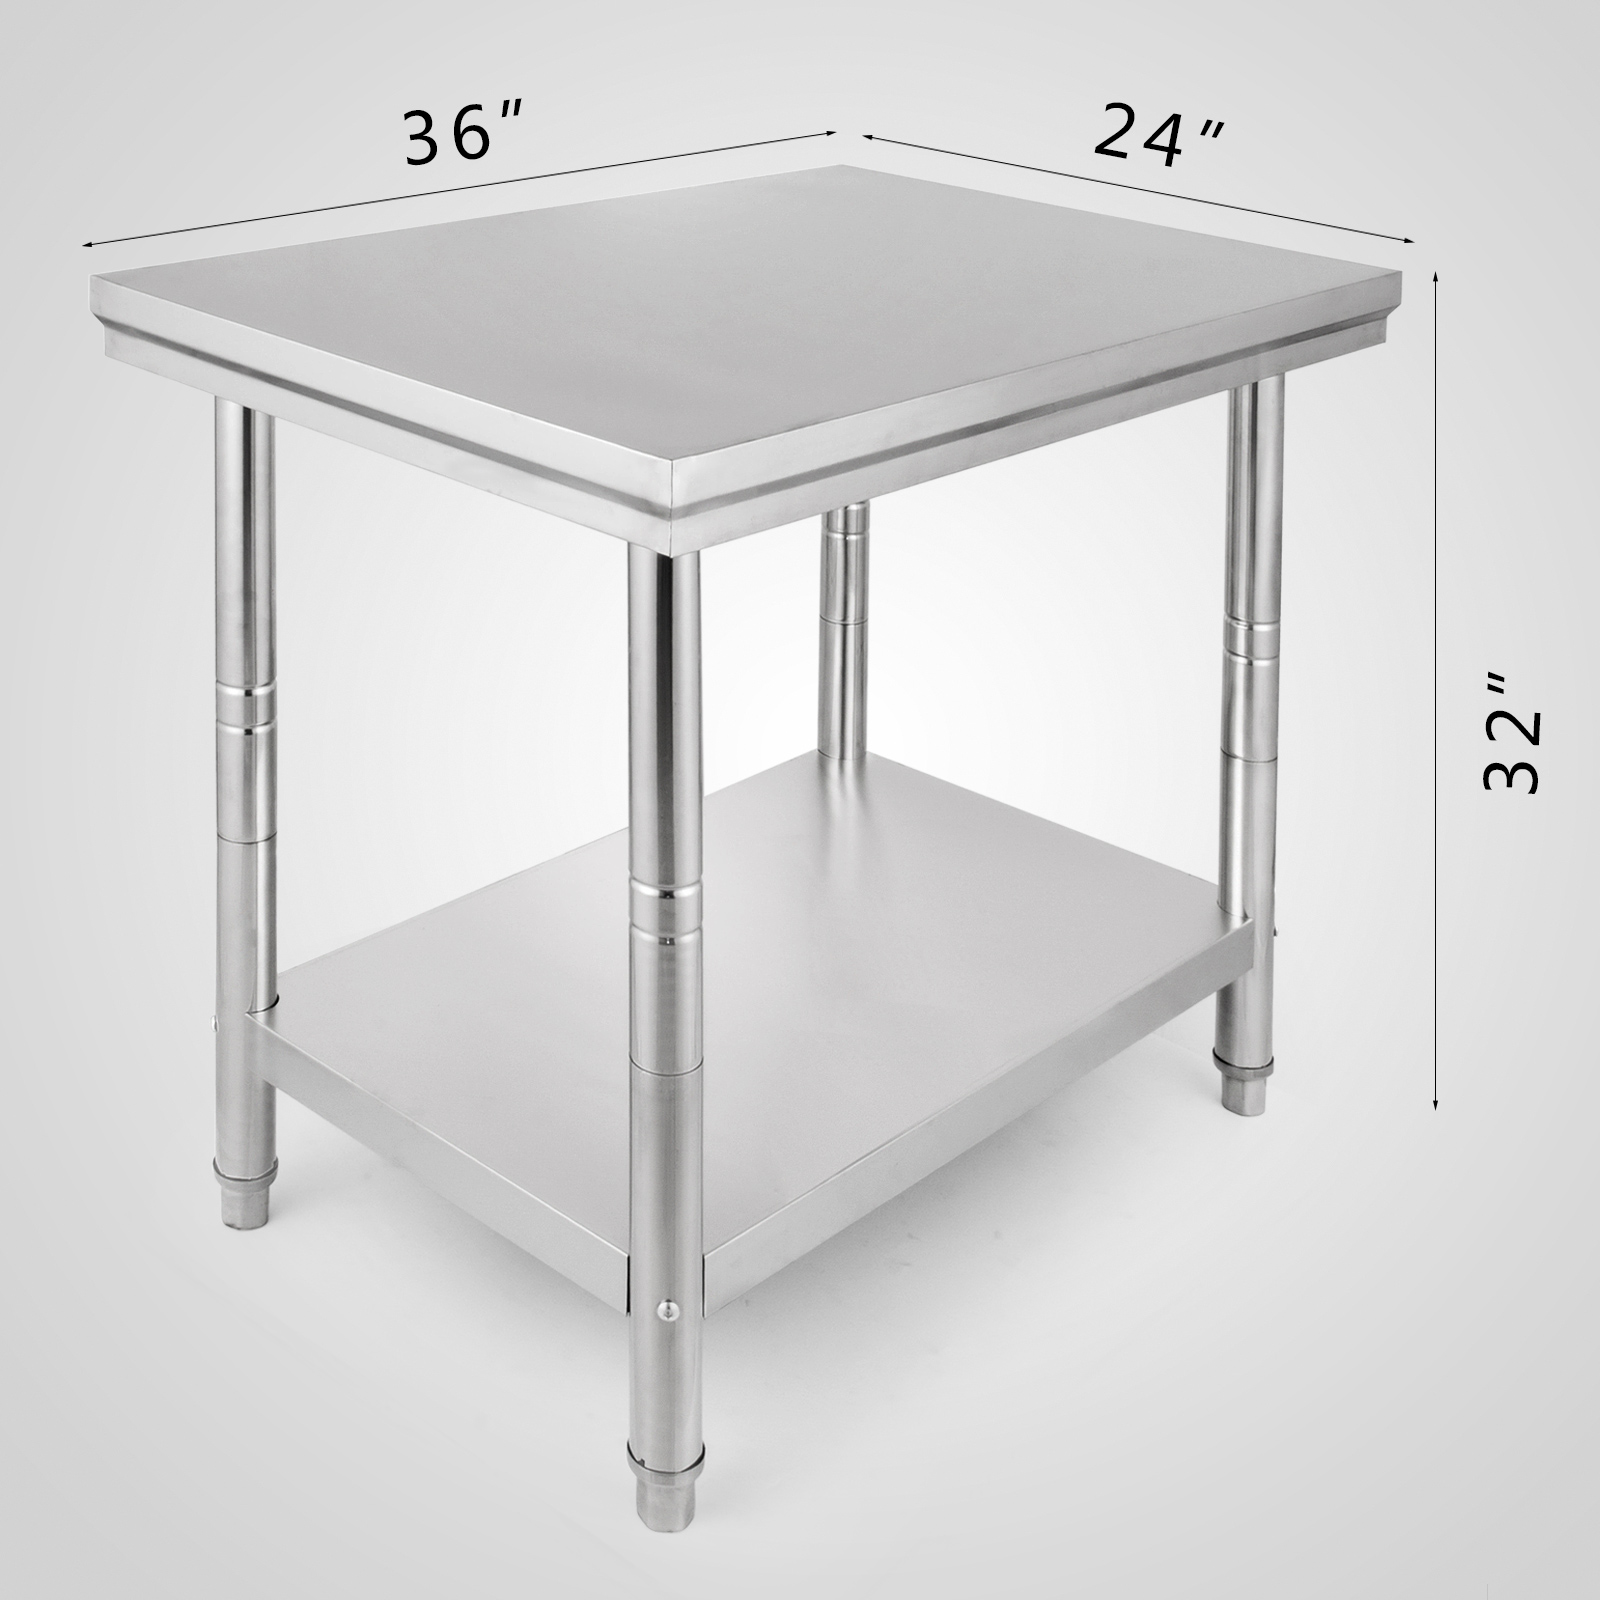 Stainless Steel Kitchen Work Table: Stainless Steel Catering Table Work Bench Kitchen Back